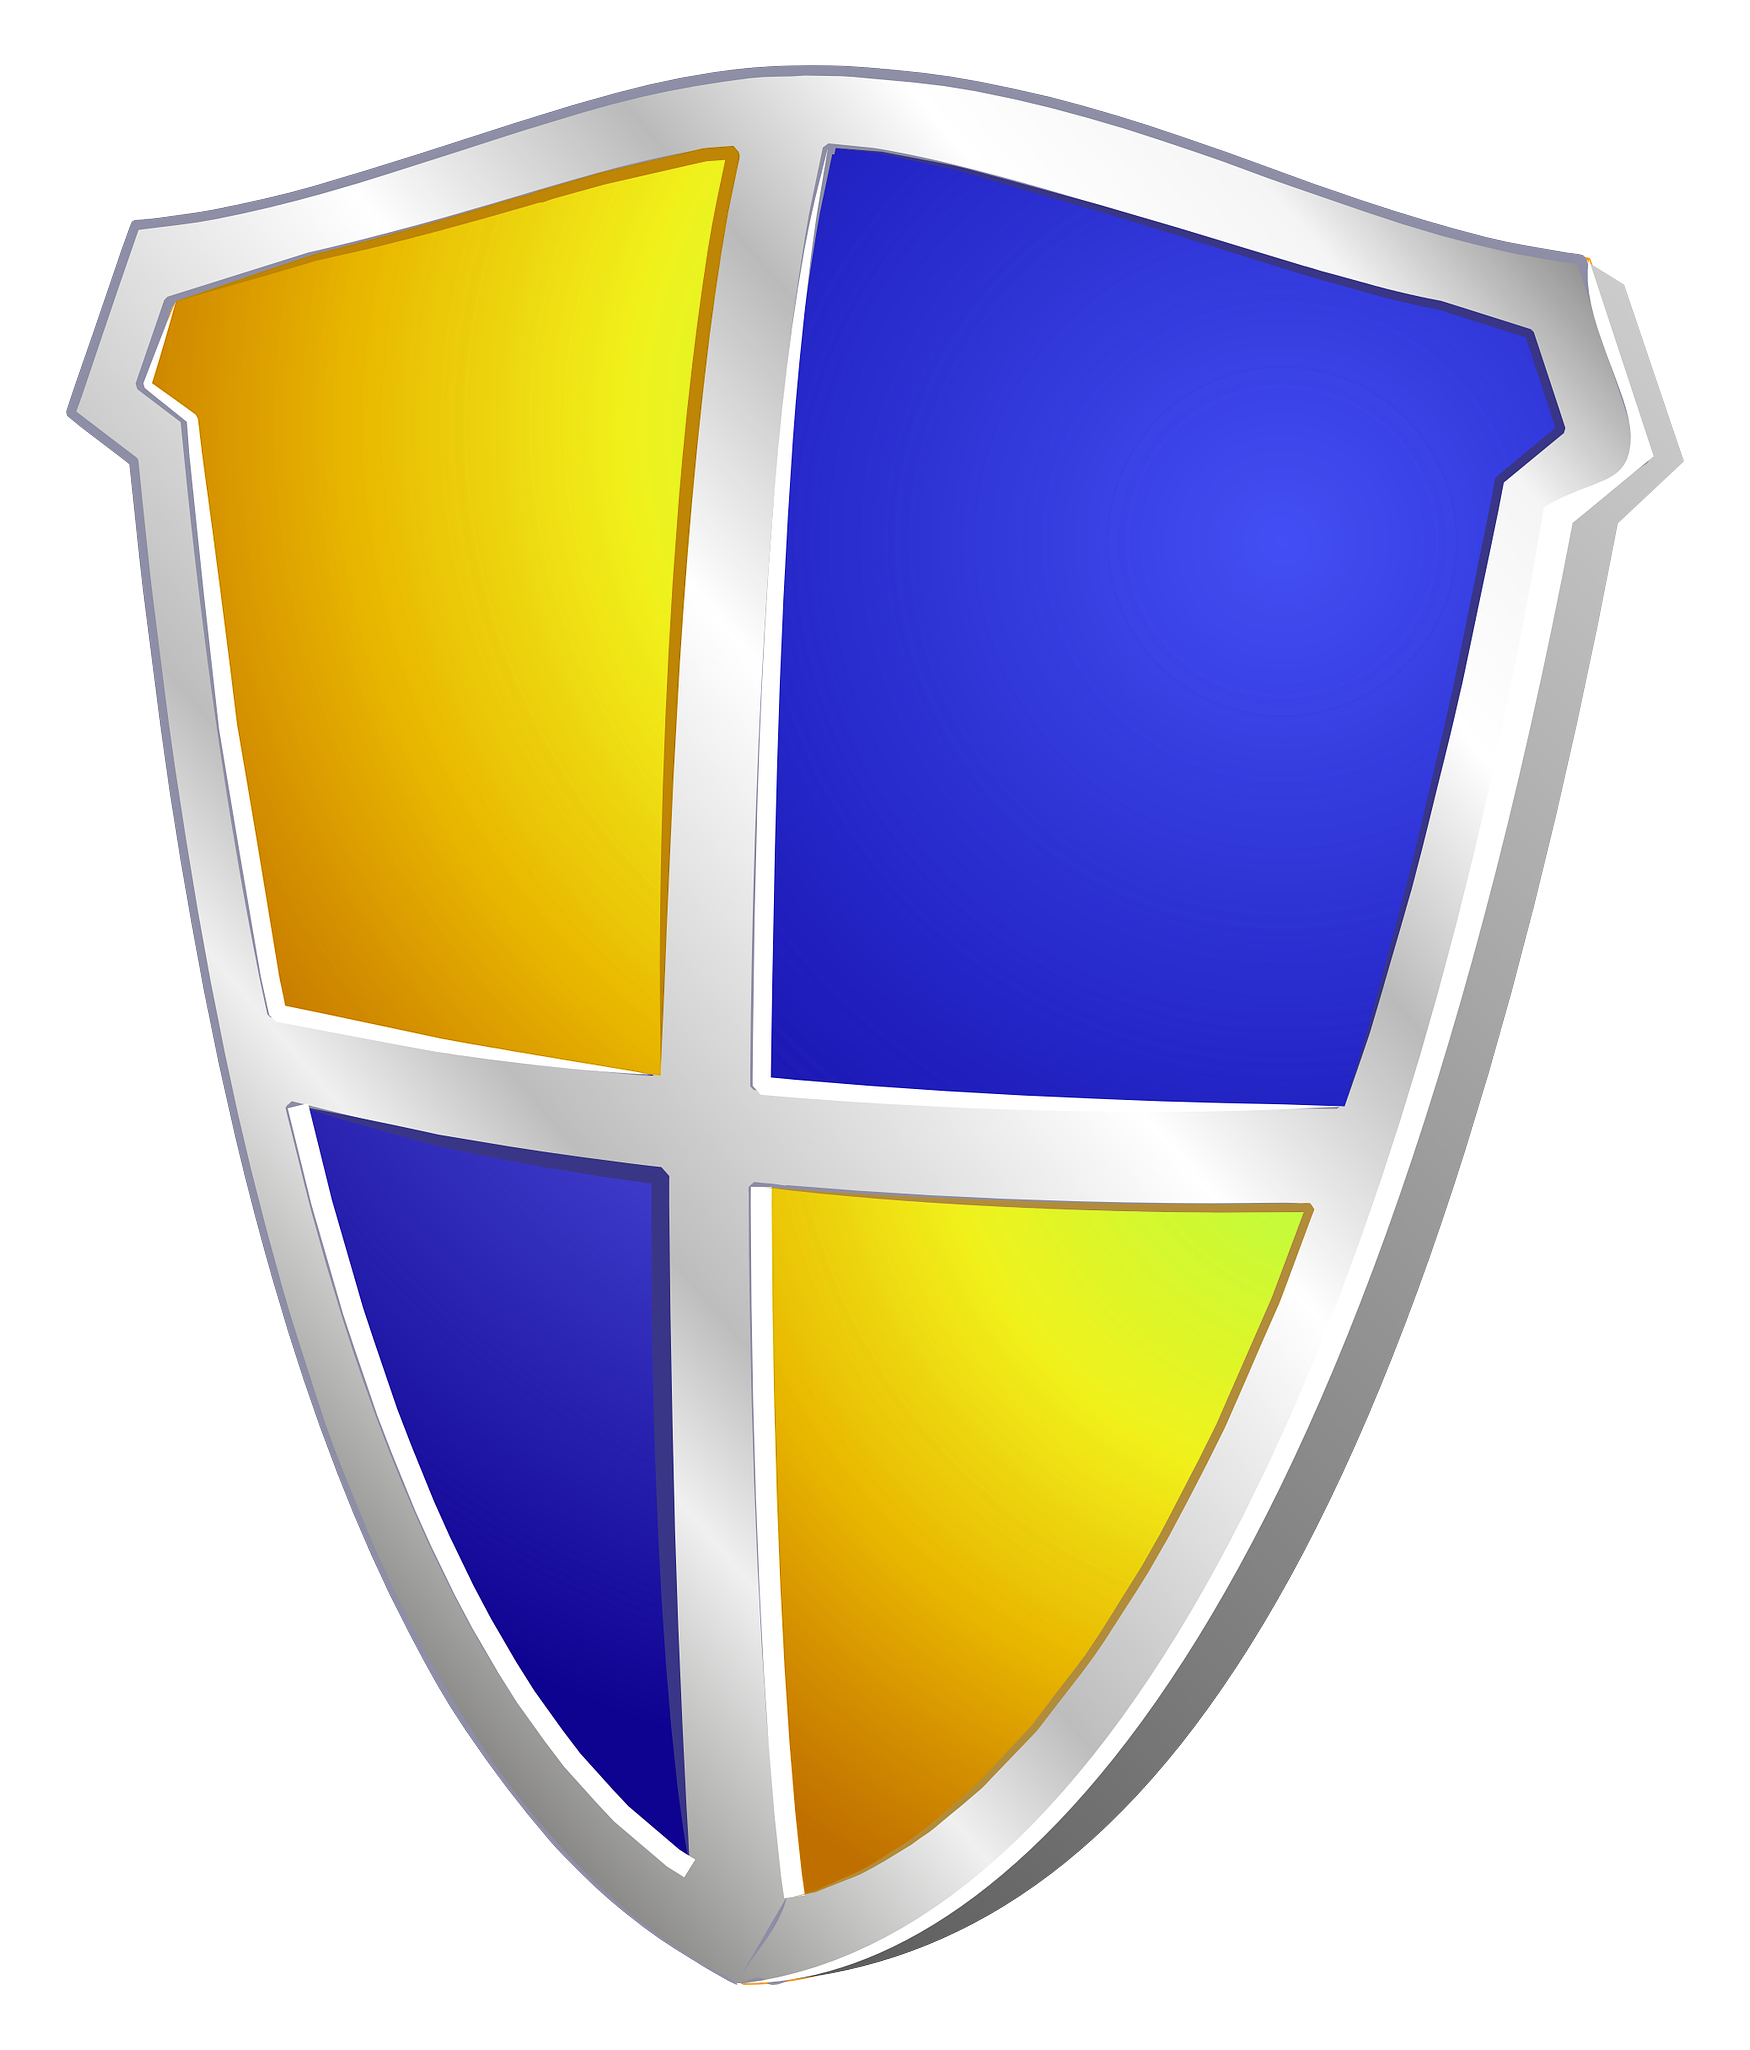 Shield PNG Transparent Image - Shield PNG